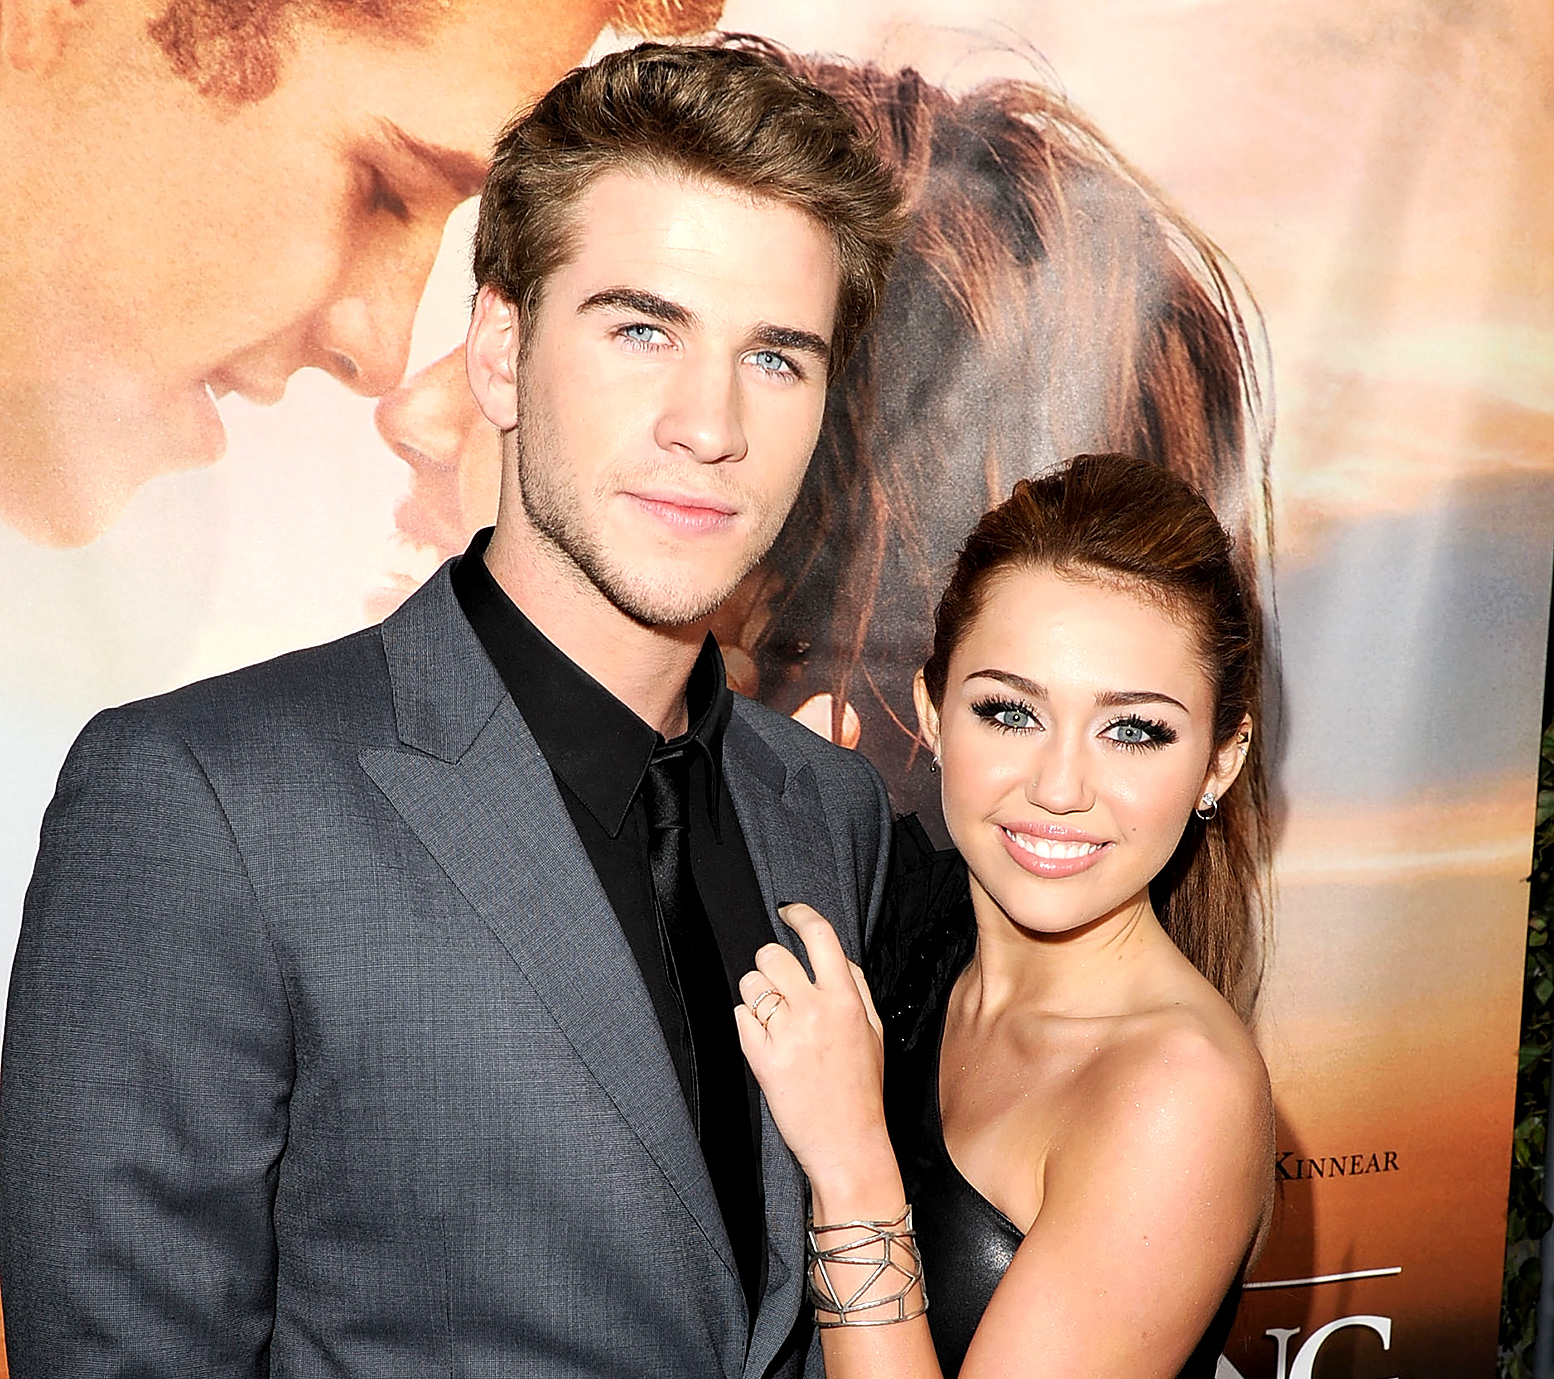 Miley Cyrus and Liam Hemsworth's 'The Last Song' Surged in ...